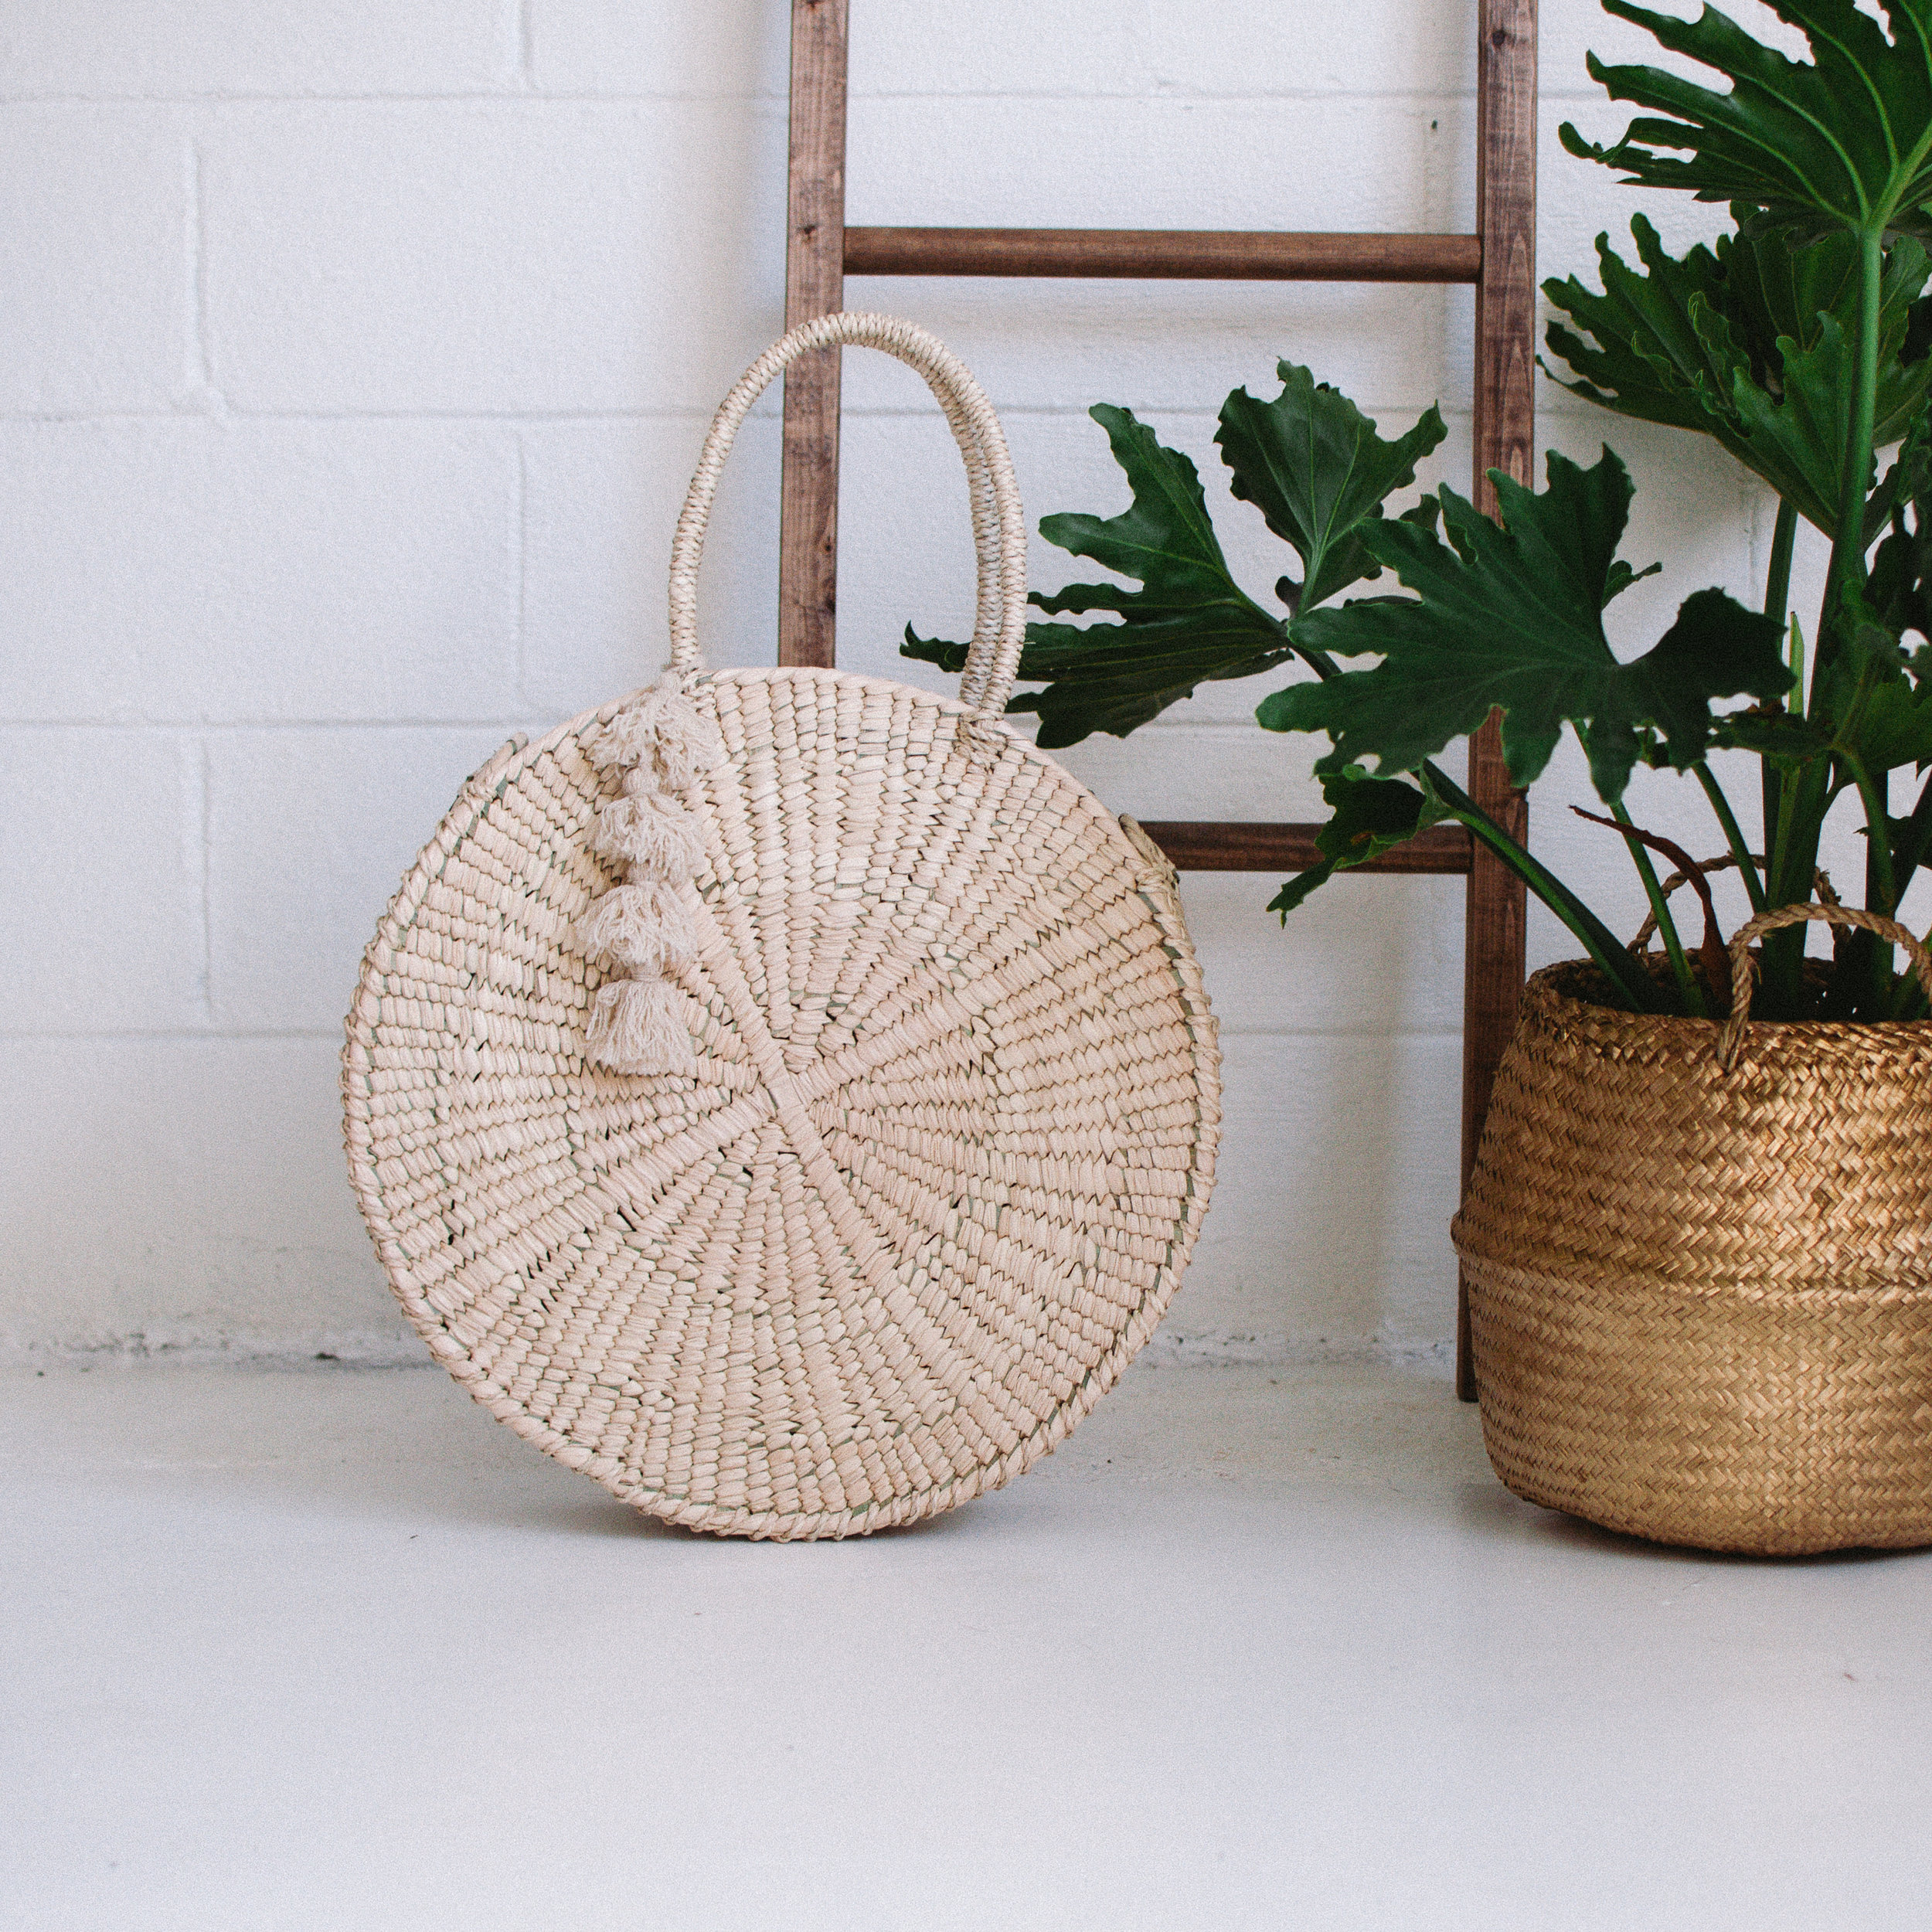 The Moon Tote. Crafted by artisans in Southern Mexico from 100% local palm, this bag - which takes three full days to produce - is truly a work of art.